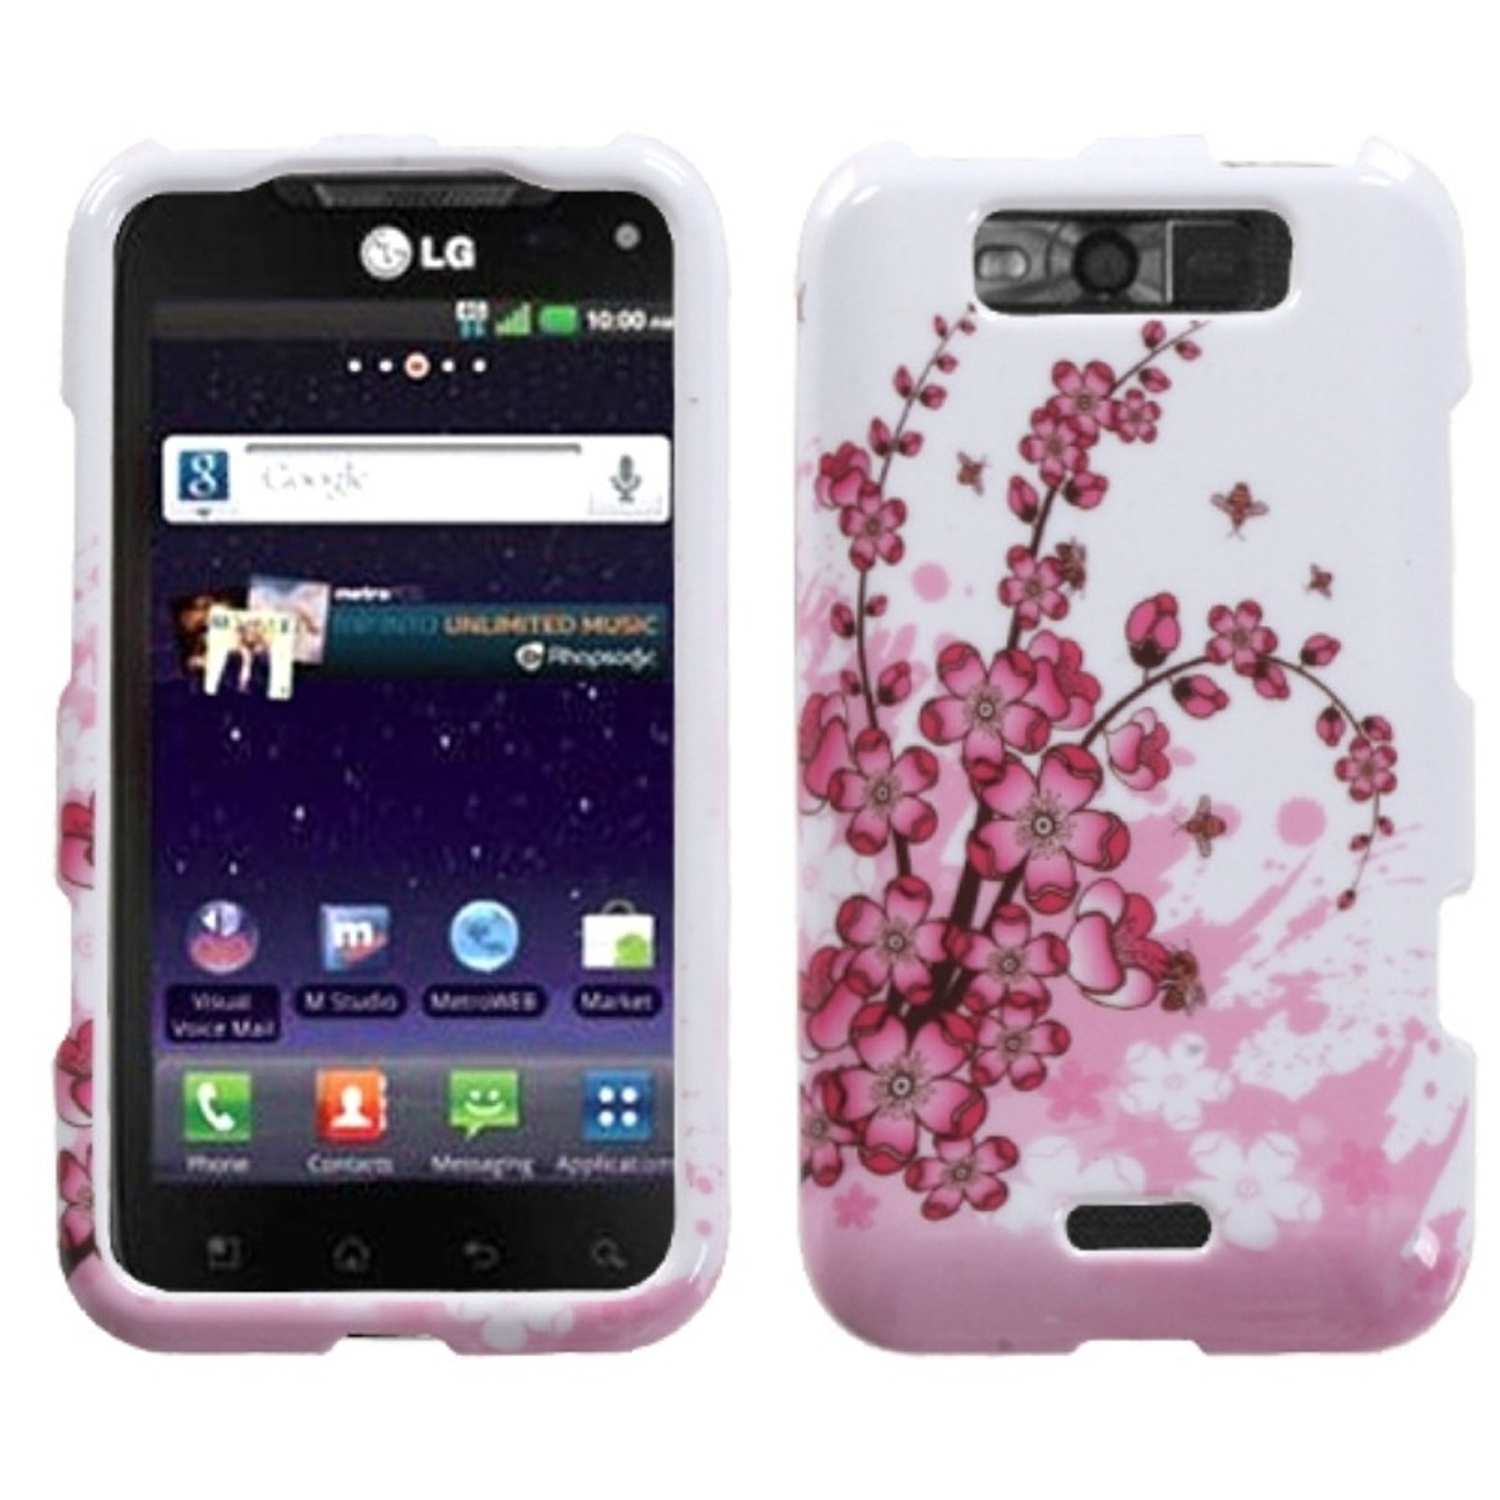 Insten Spring Flowers Phone Case for LG: MS840 (Connect 4G), LS840 (Viper)